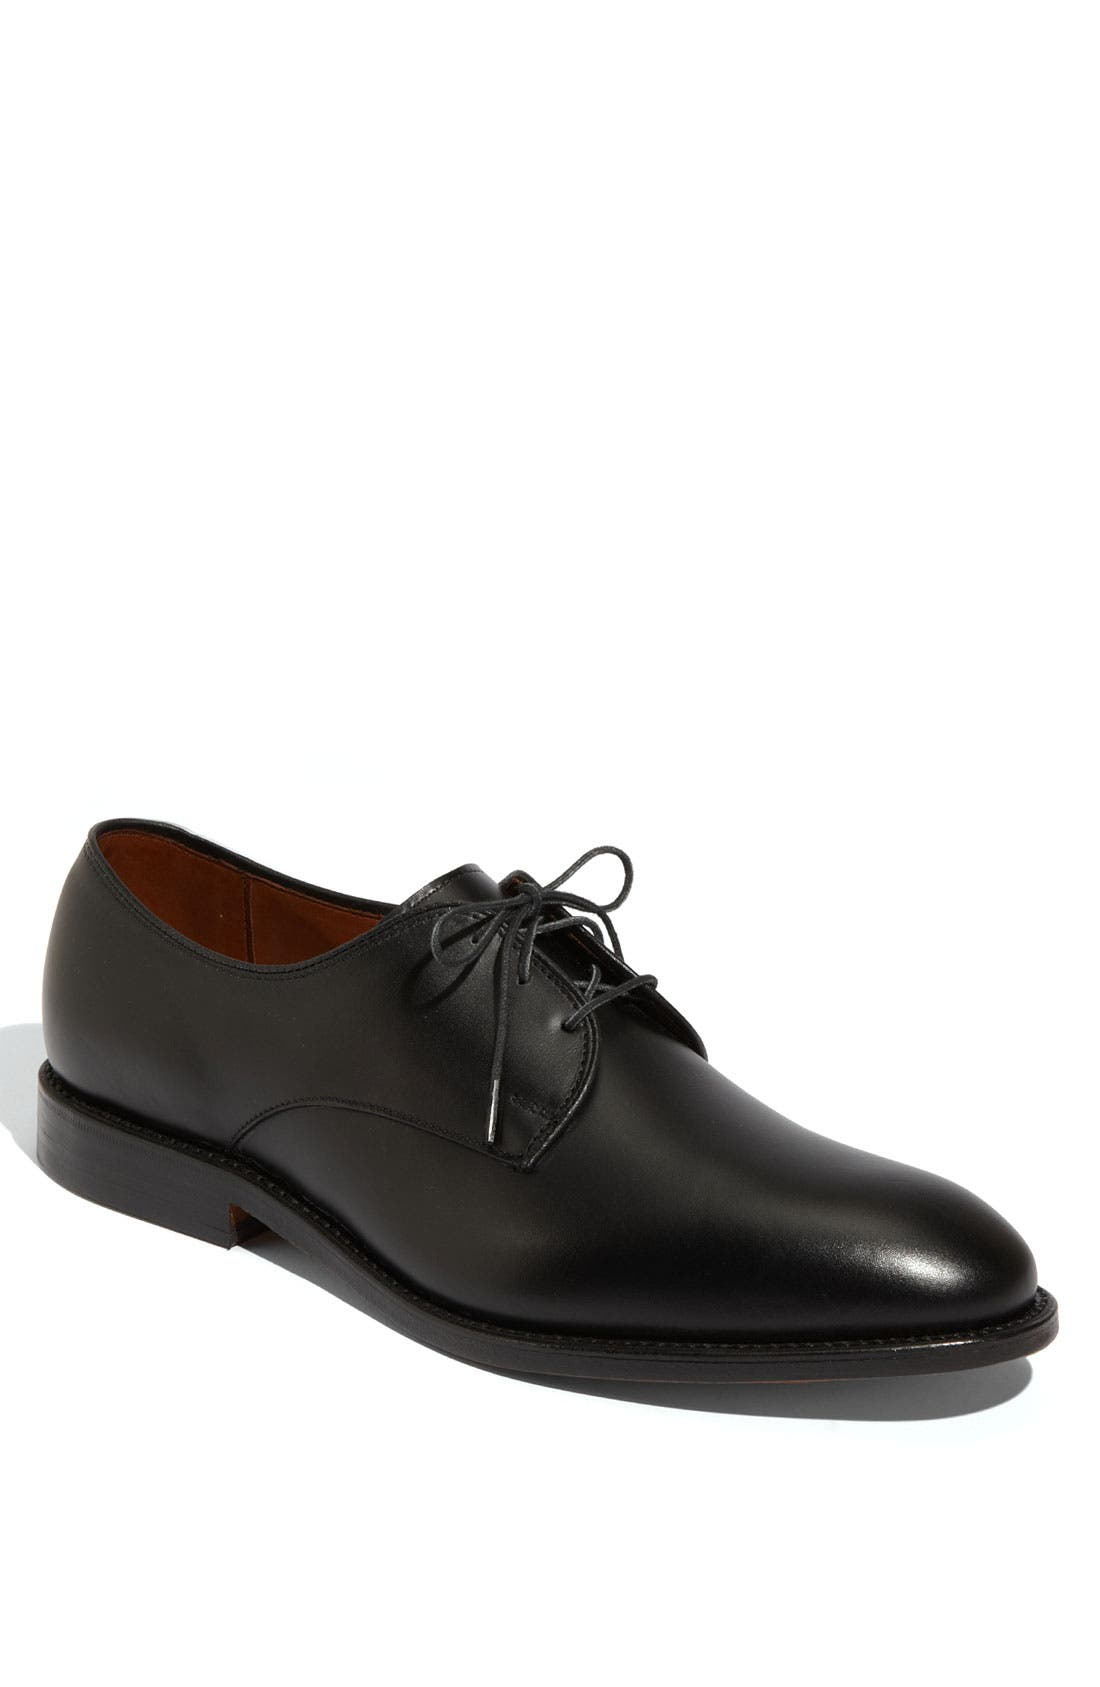 Main Image - Allen Edmonds 'Kenilworth' Oxford (Men)